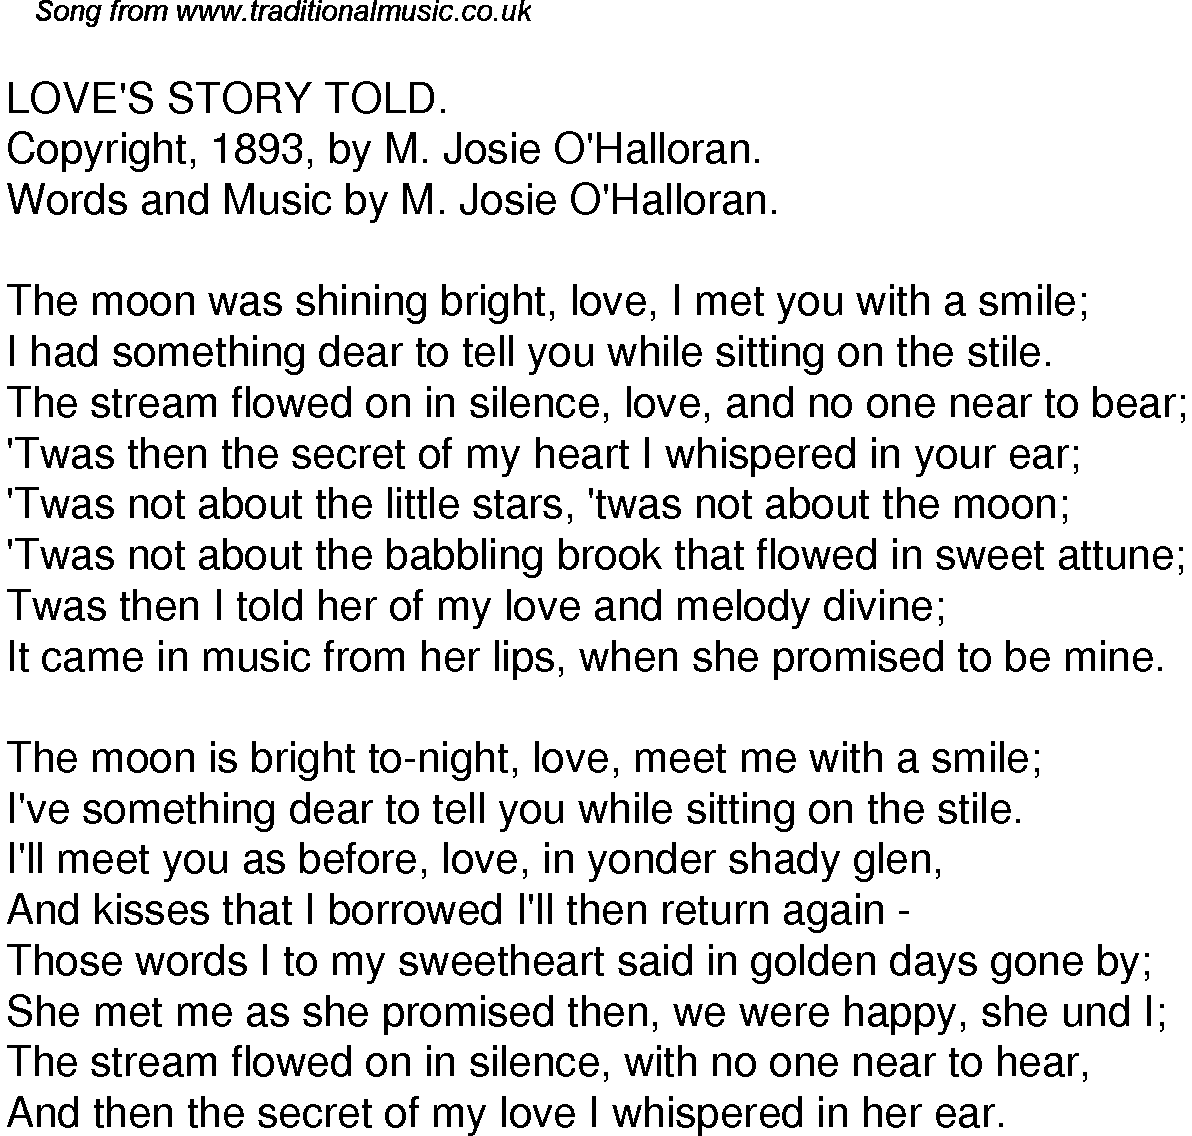 a tragic love story Tragic love story latest stories in love the tragically beautiful love story of jennifer rios and allen villanueva disclaimer wwwphilippinestrendscom makes no representations, warranties, or assurances as to the accuracy, currency or completeness of the content contain on this website or.